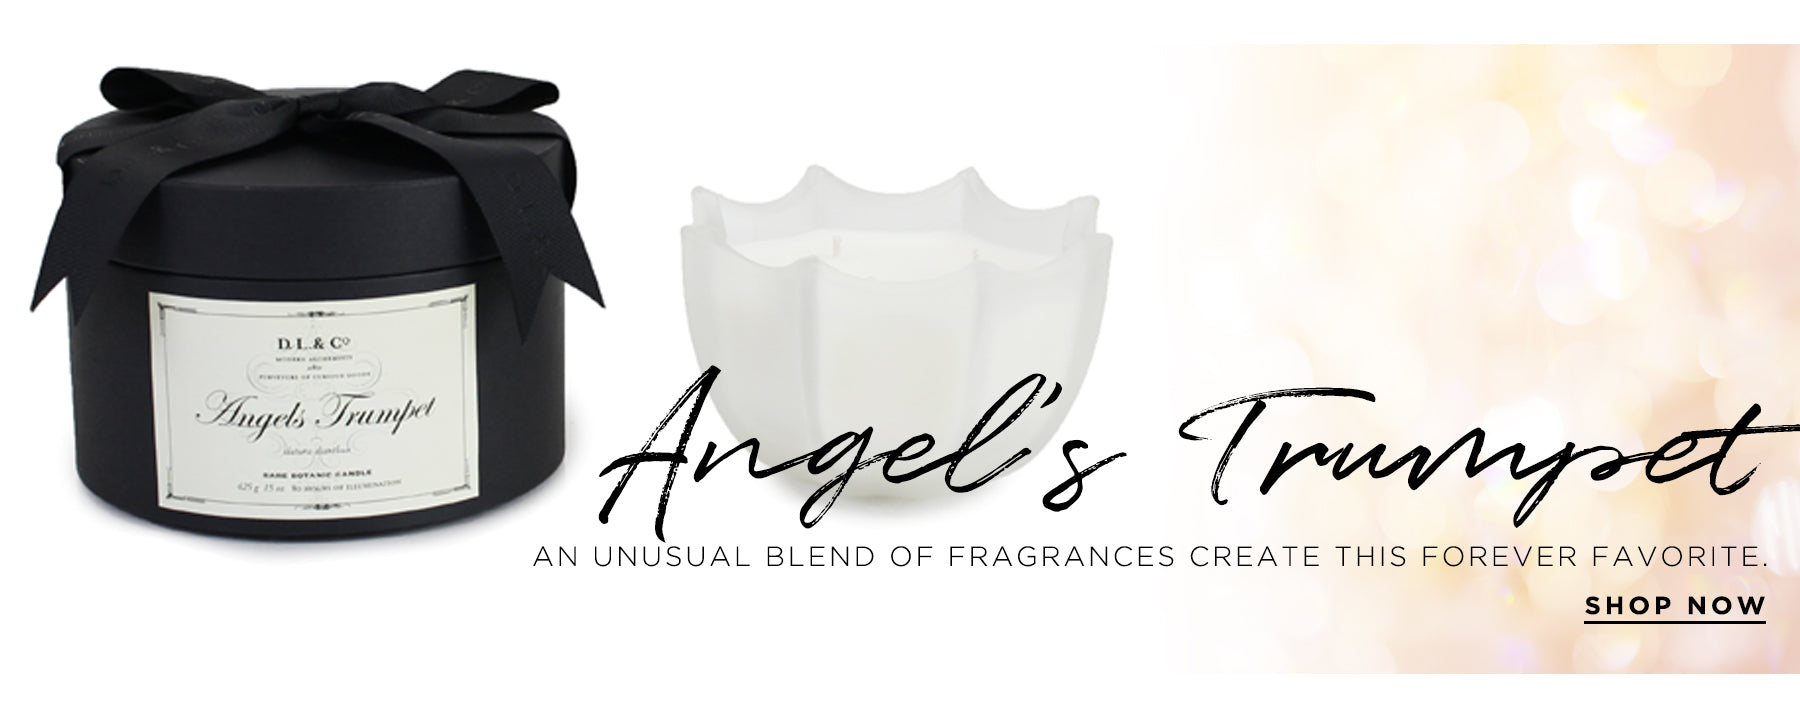 Angel's Trumpet. An unusual blend of fragrances create this forever favorite. Shop Now.